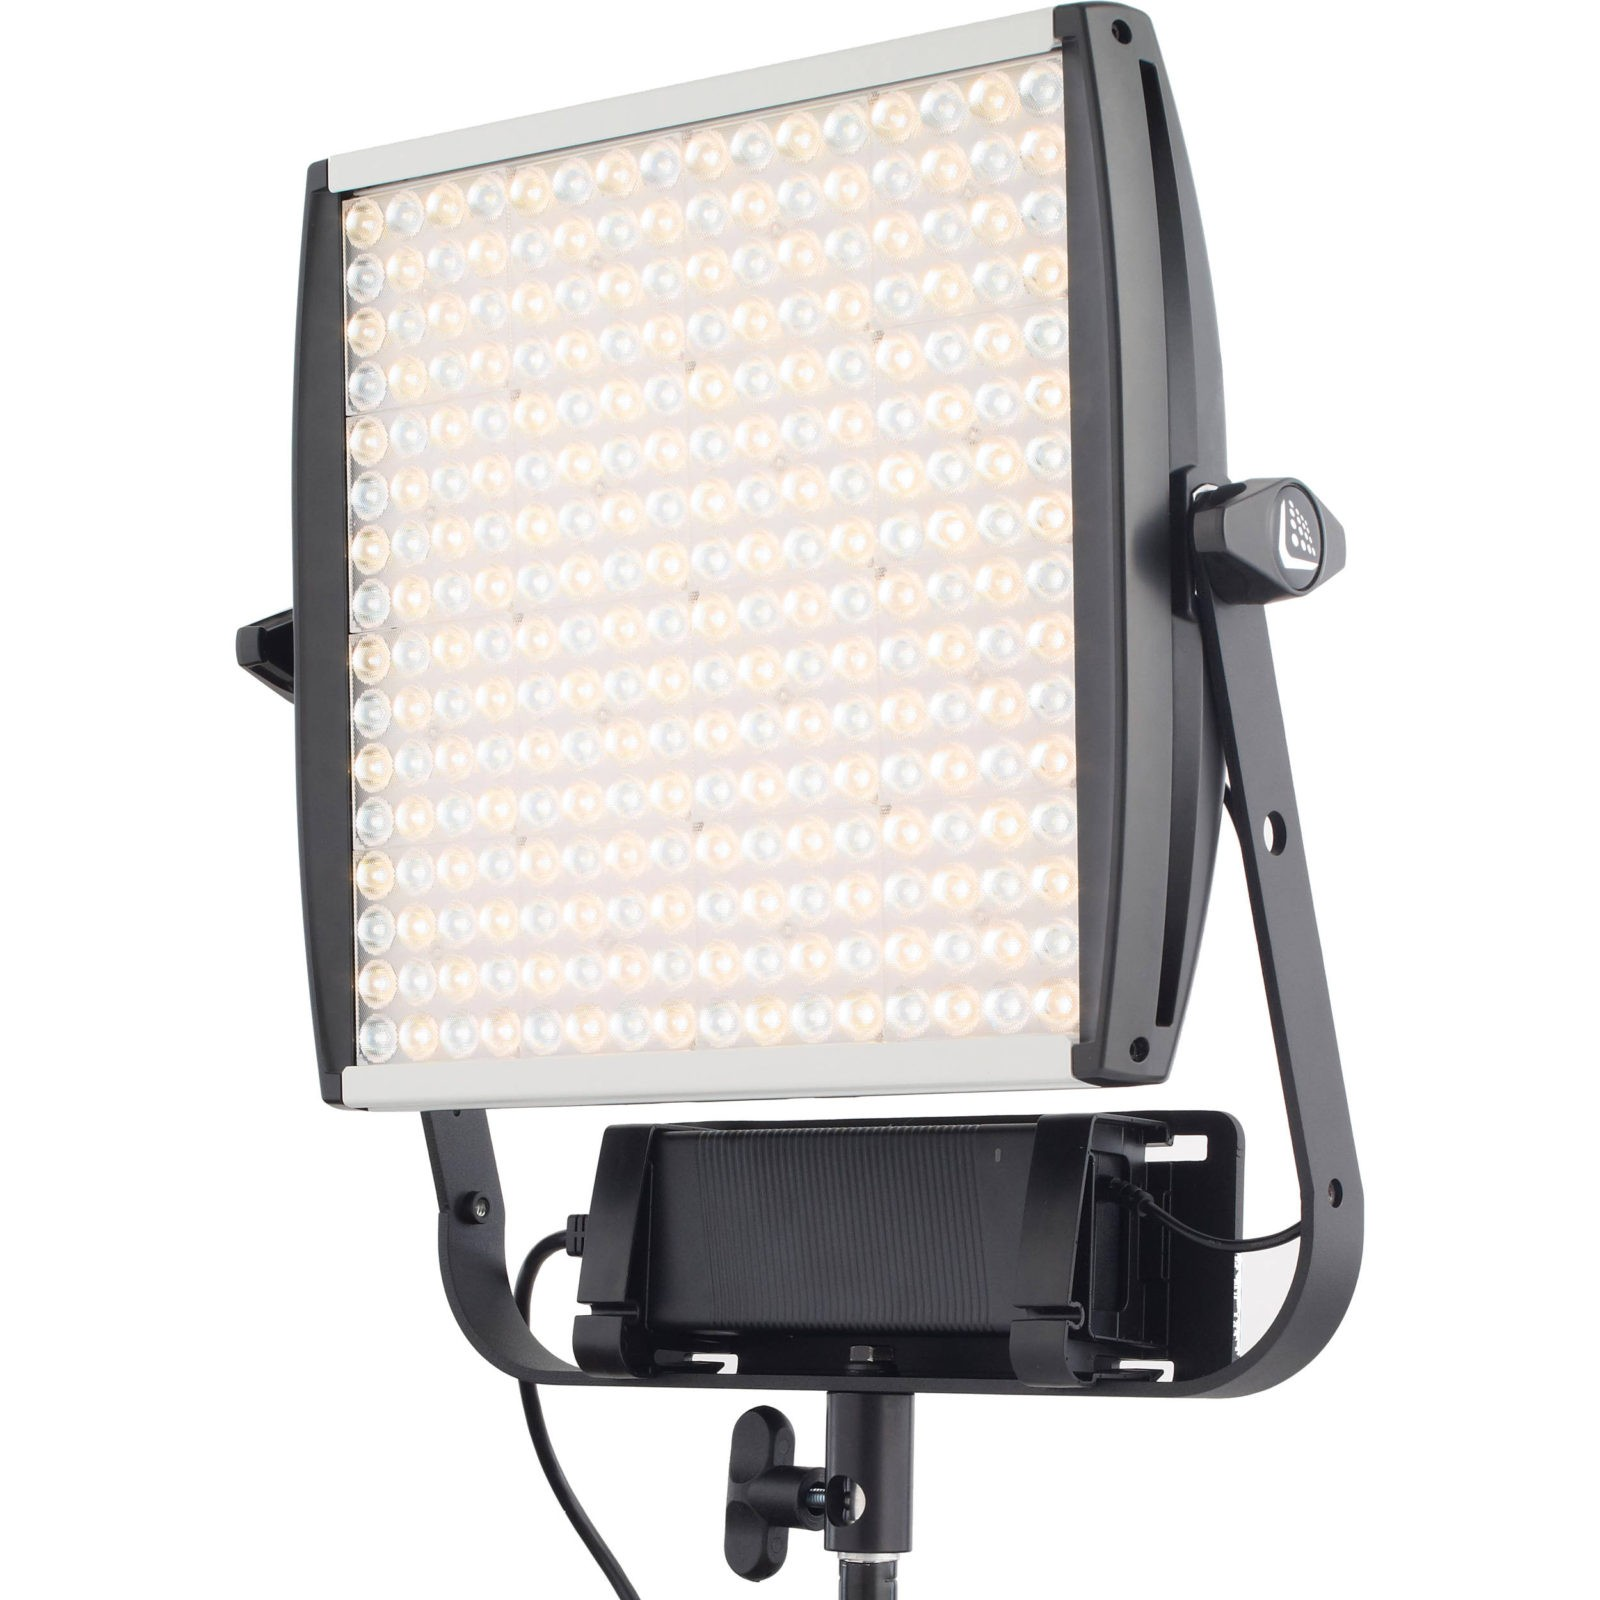 Litepanels Astra 1x1 Bi-Color LED Panel Light Rental in Manhattan and Brooklyn